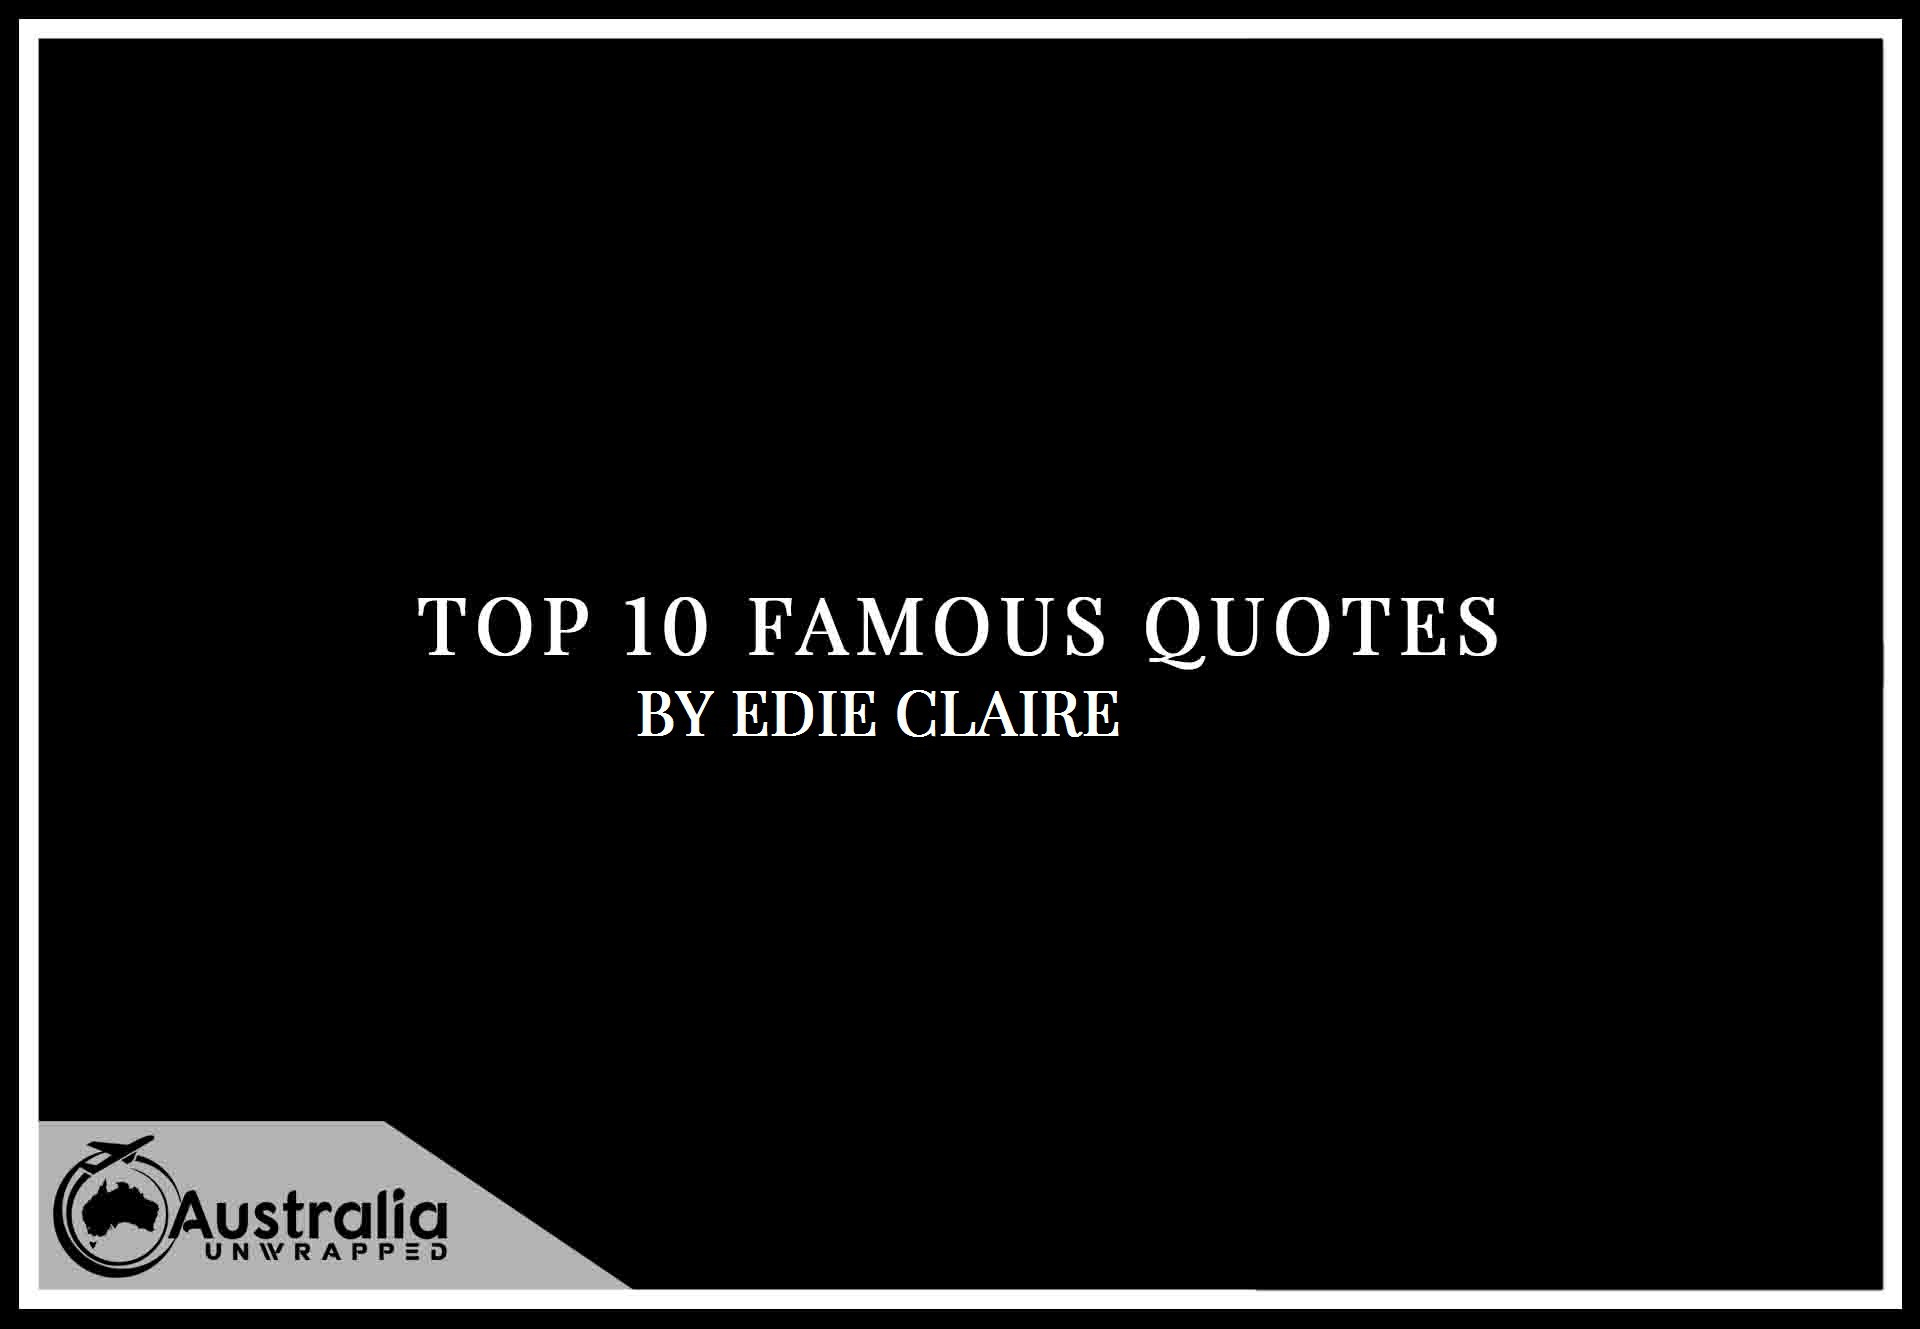 Edie Claire's Top 10 Popular and Famous Quotes